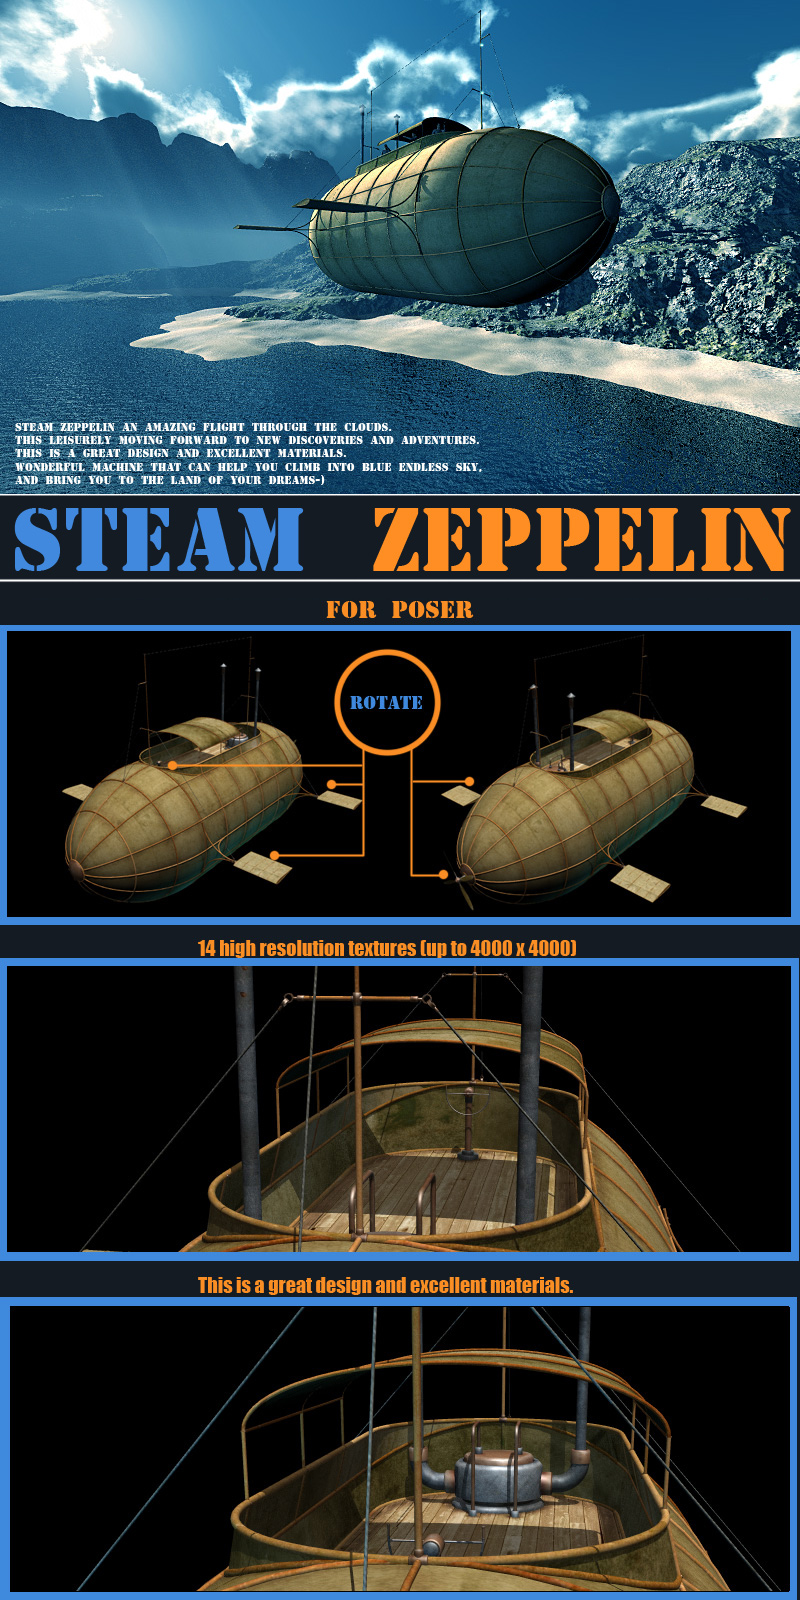 Steam Zeppelin for Poser